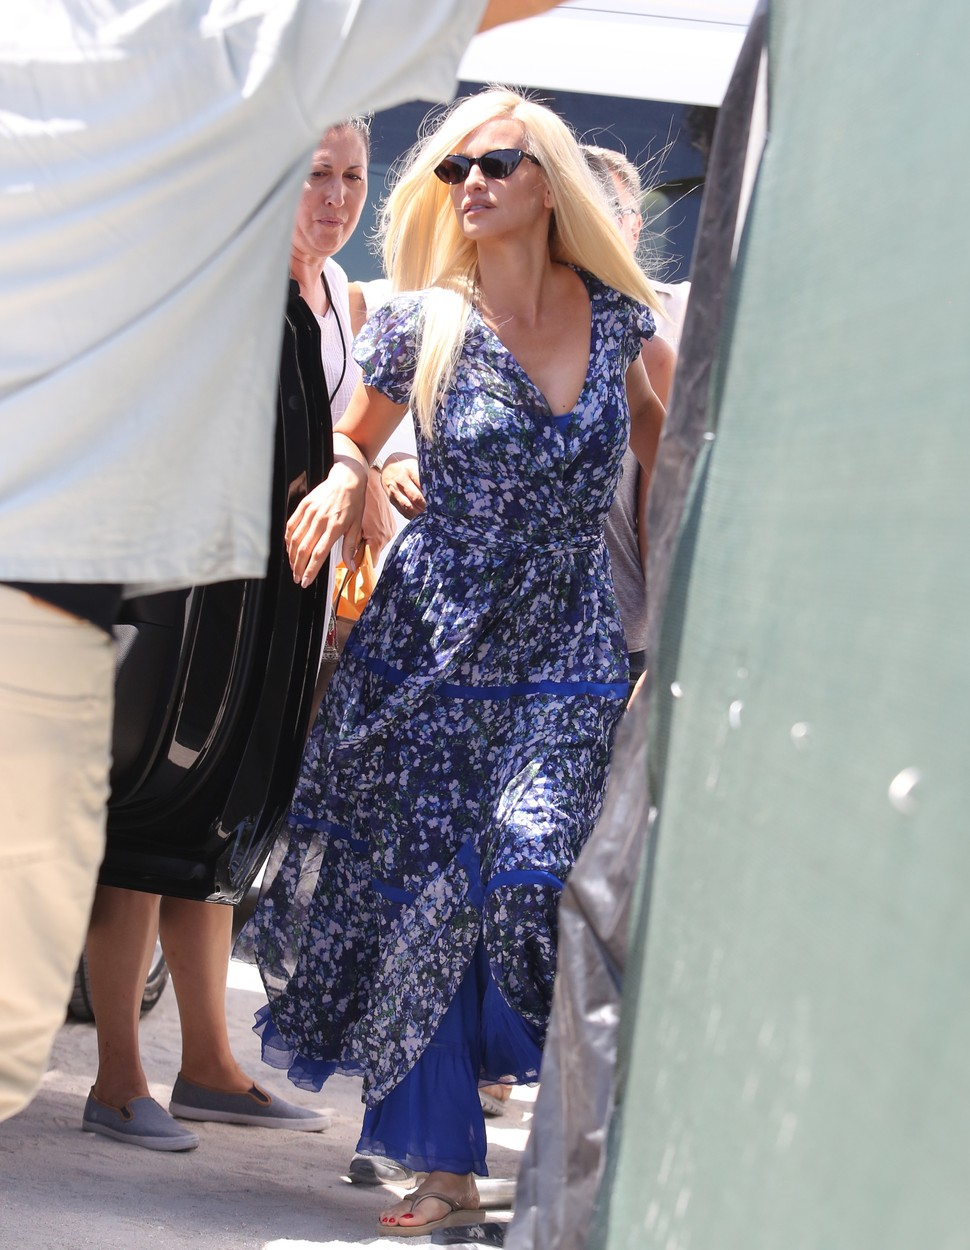 May 16 2017 Penelope Cruz like Donatella Versace in American Crime Story: VERSACE movie set.    Mandatory Credit: OHPIX  Ref: OH_2sol, Image: 332464623, License: Rights-managed, Restrictions: , Model Release: no, Credit line: Profimedia, OHPIX